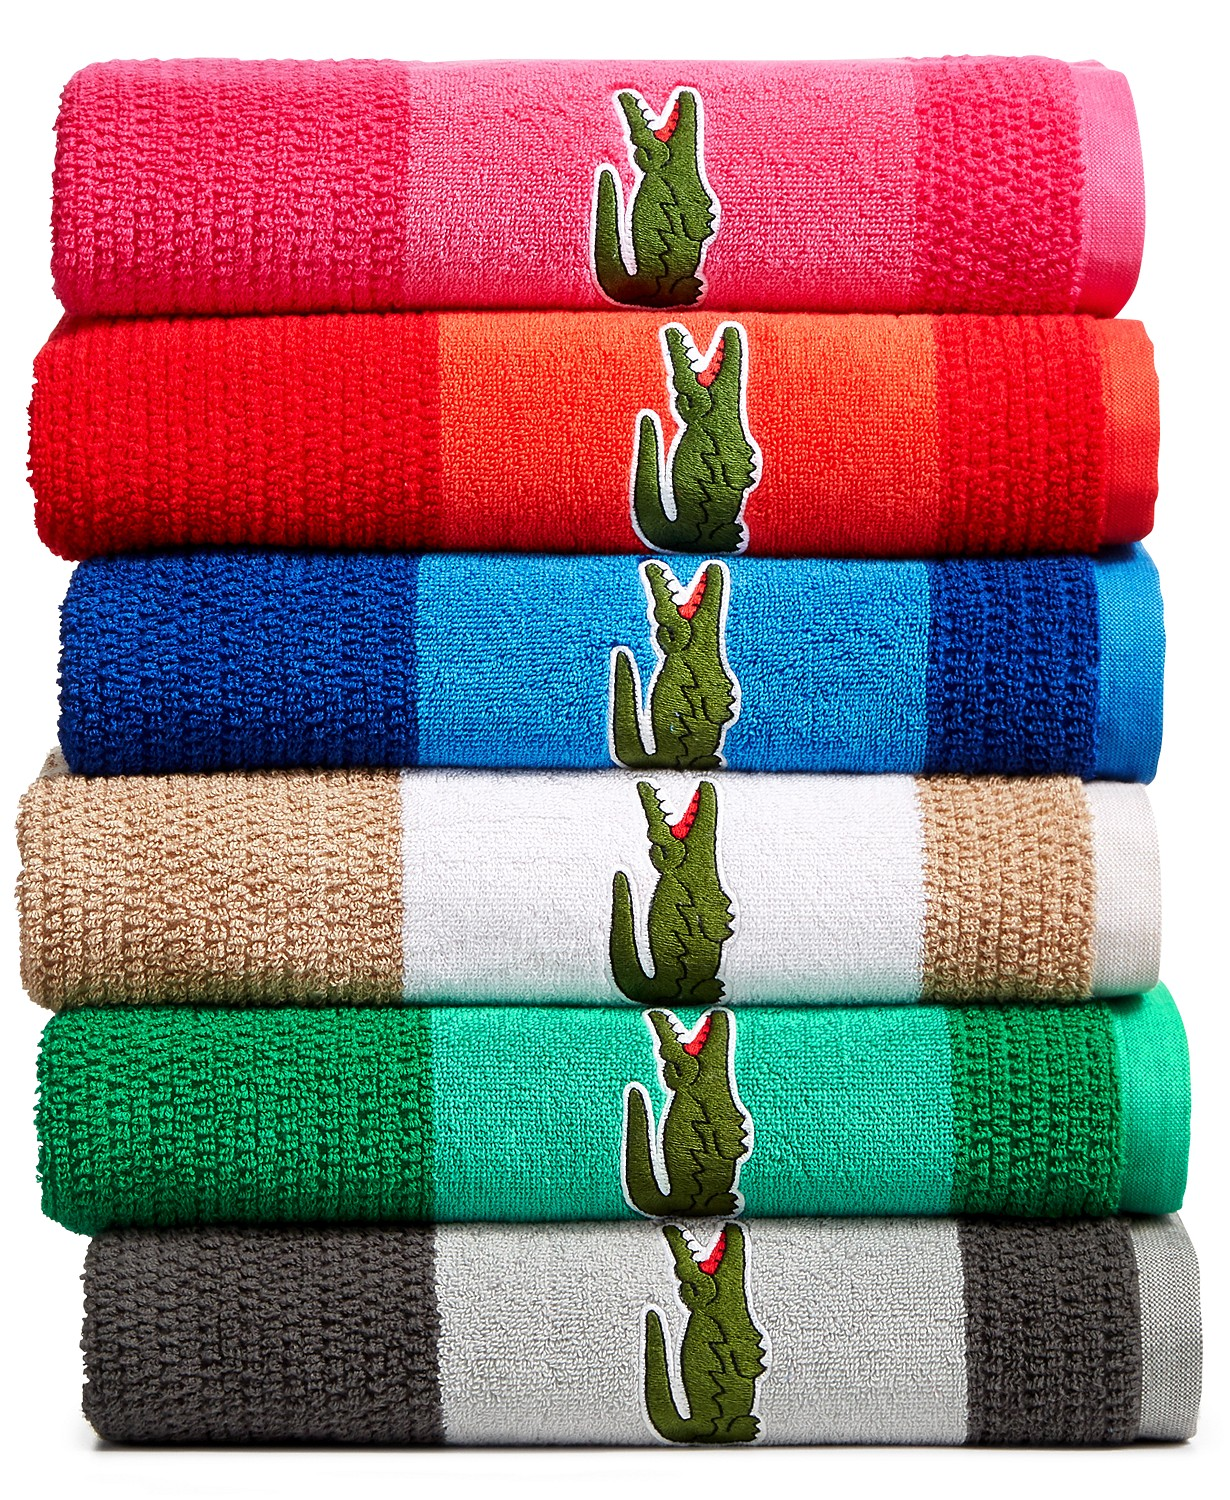 Lacoste Match Cotton Colorblocked Bath Towel (Multiple Colors)